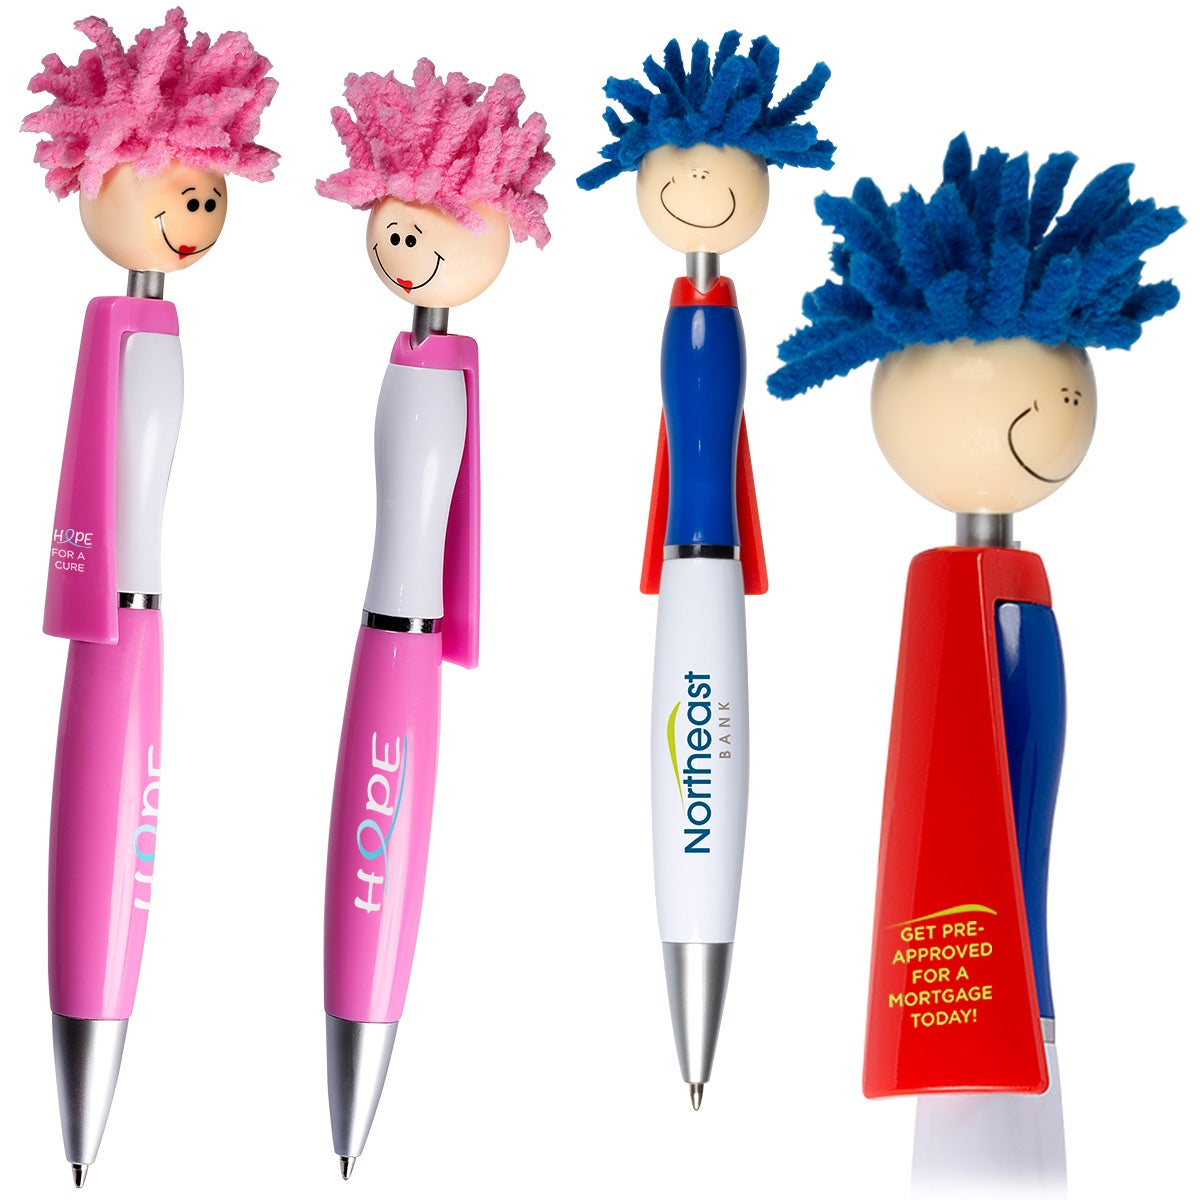 Superhero pens that I'm sure would be a hit with the boys.